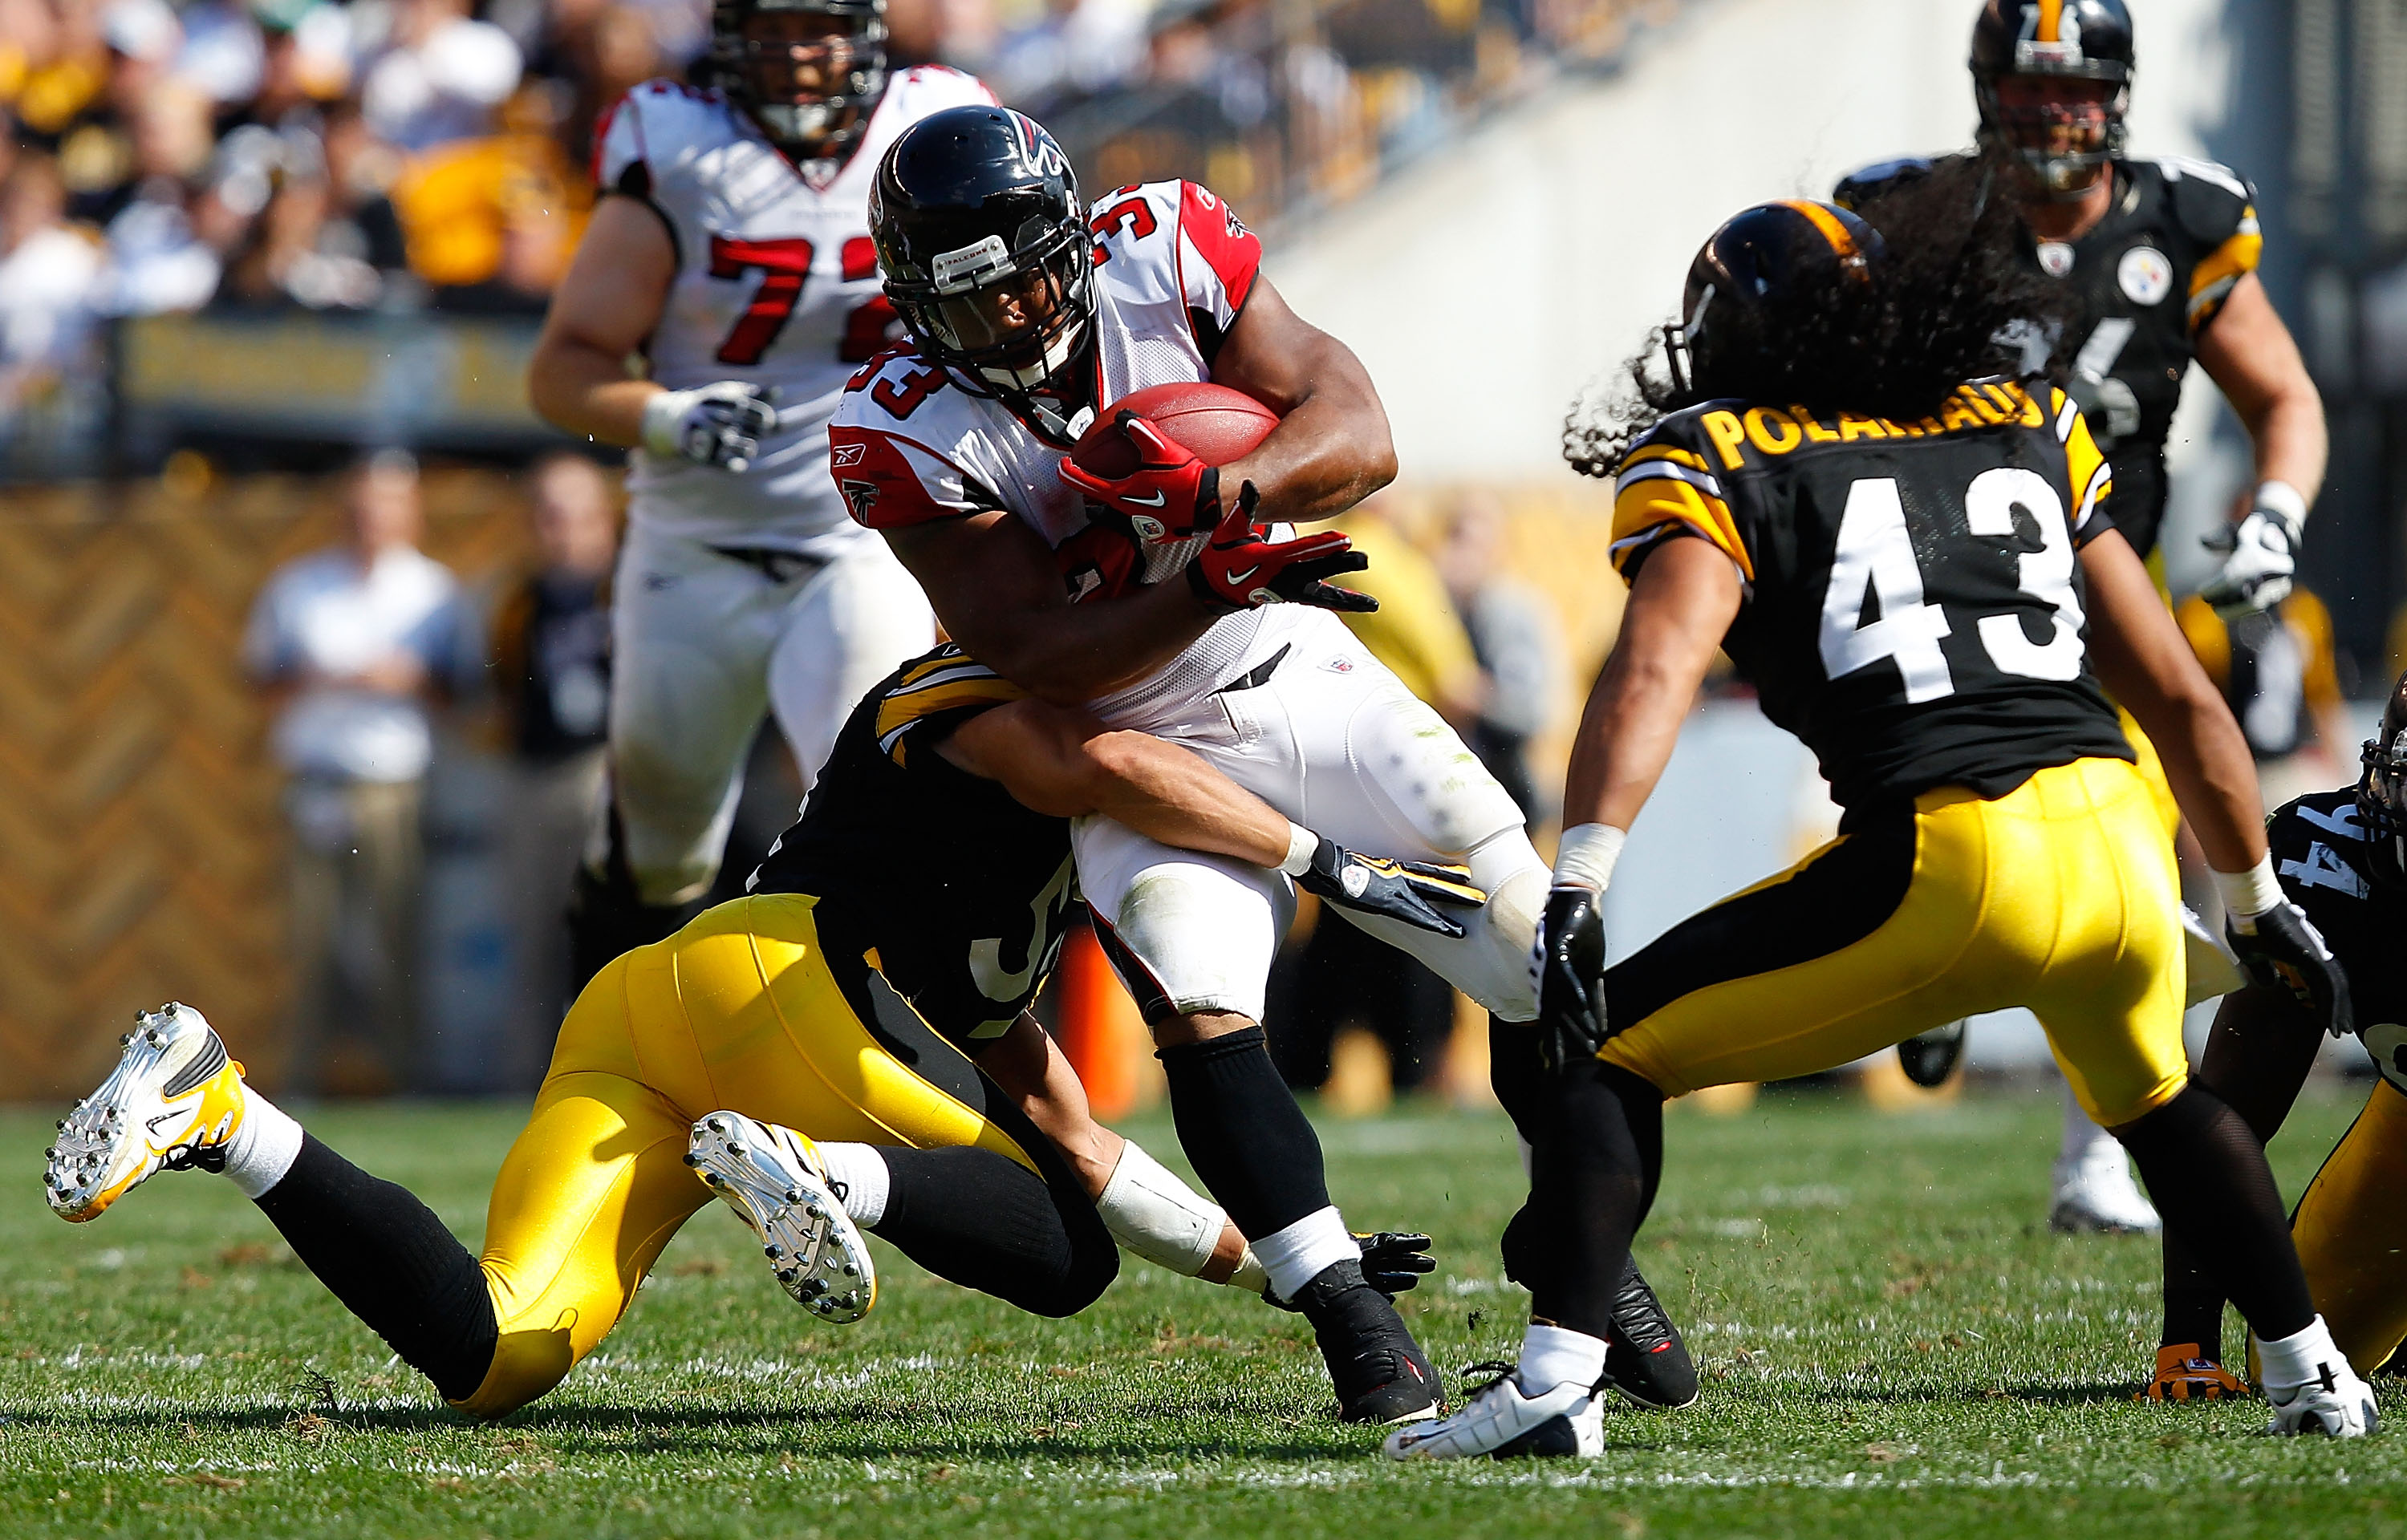 PITTSBURGH - SEPTEMBER 12:  Michael Turner #33 of the Atlanta Falcons attempts to run through a tackle by James Farrior #51 of the Pittsburgh Steelers during the NFL season opener game on September 12, 2010 at Heinz Field in Pittsburgh, Pennsylvania.  (Ph